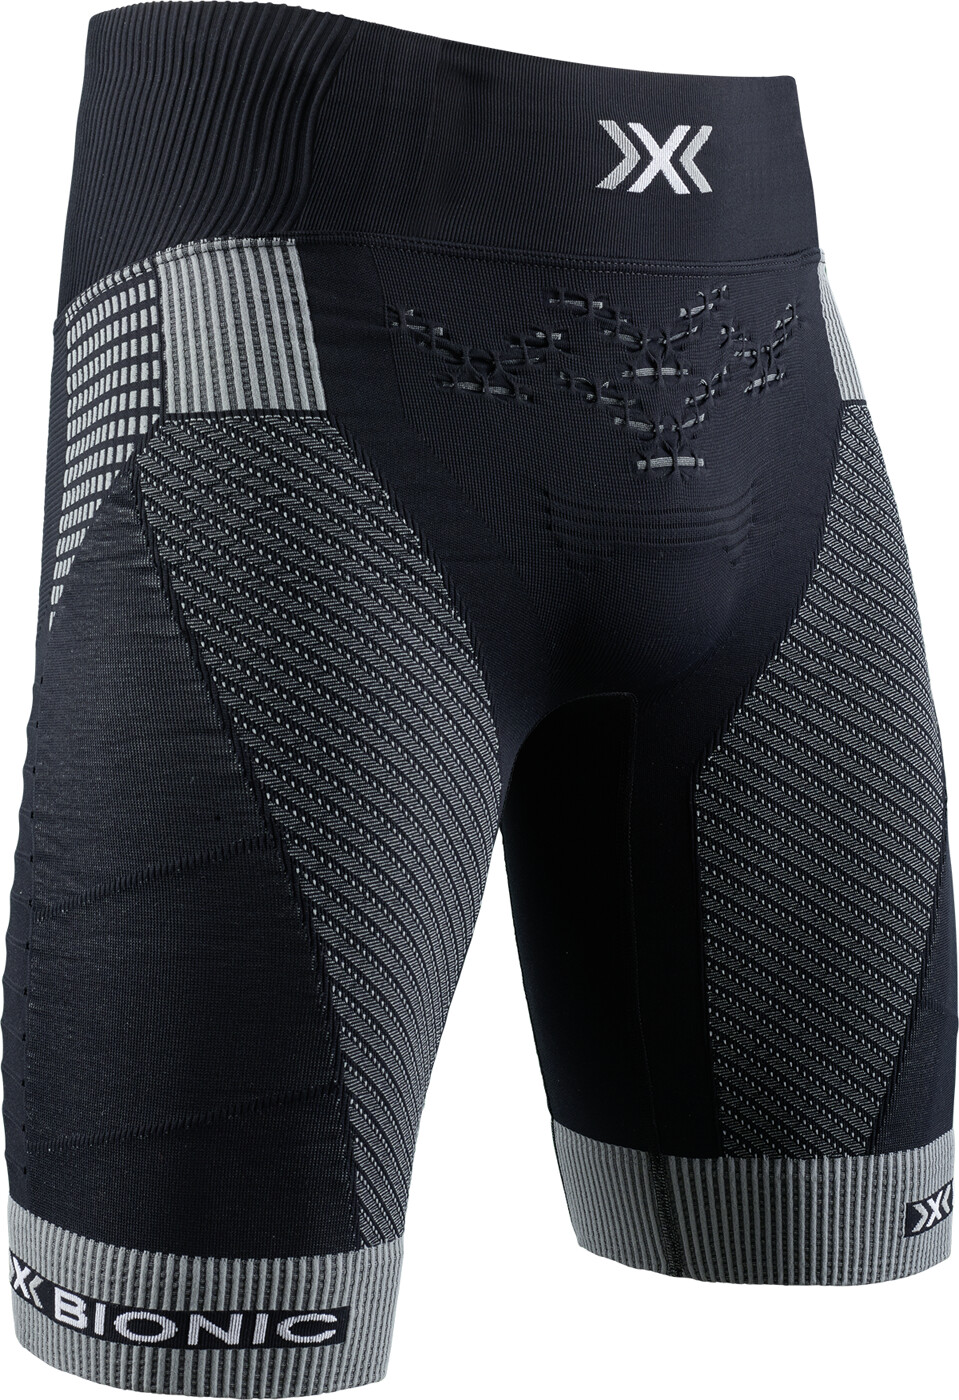 X-BIONIC TRAIL RUNNING SHORTS - Herren